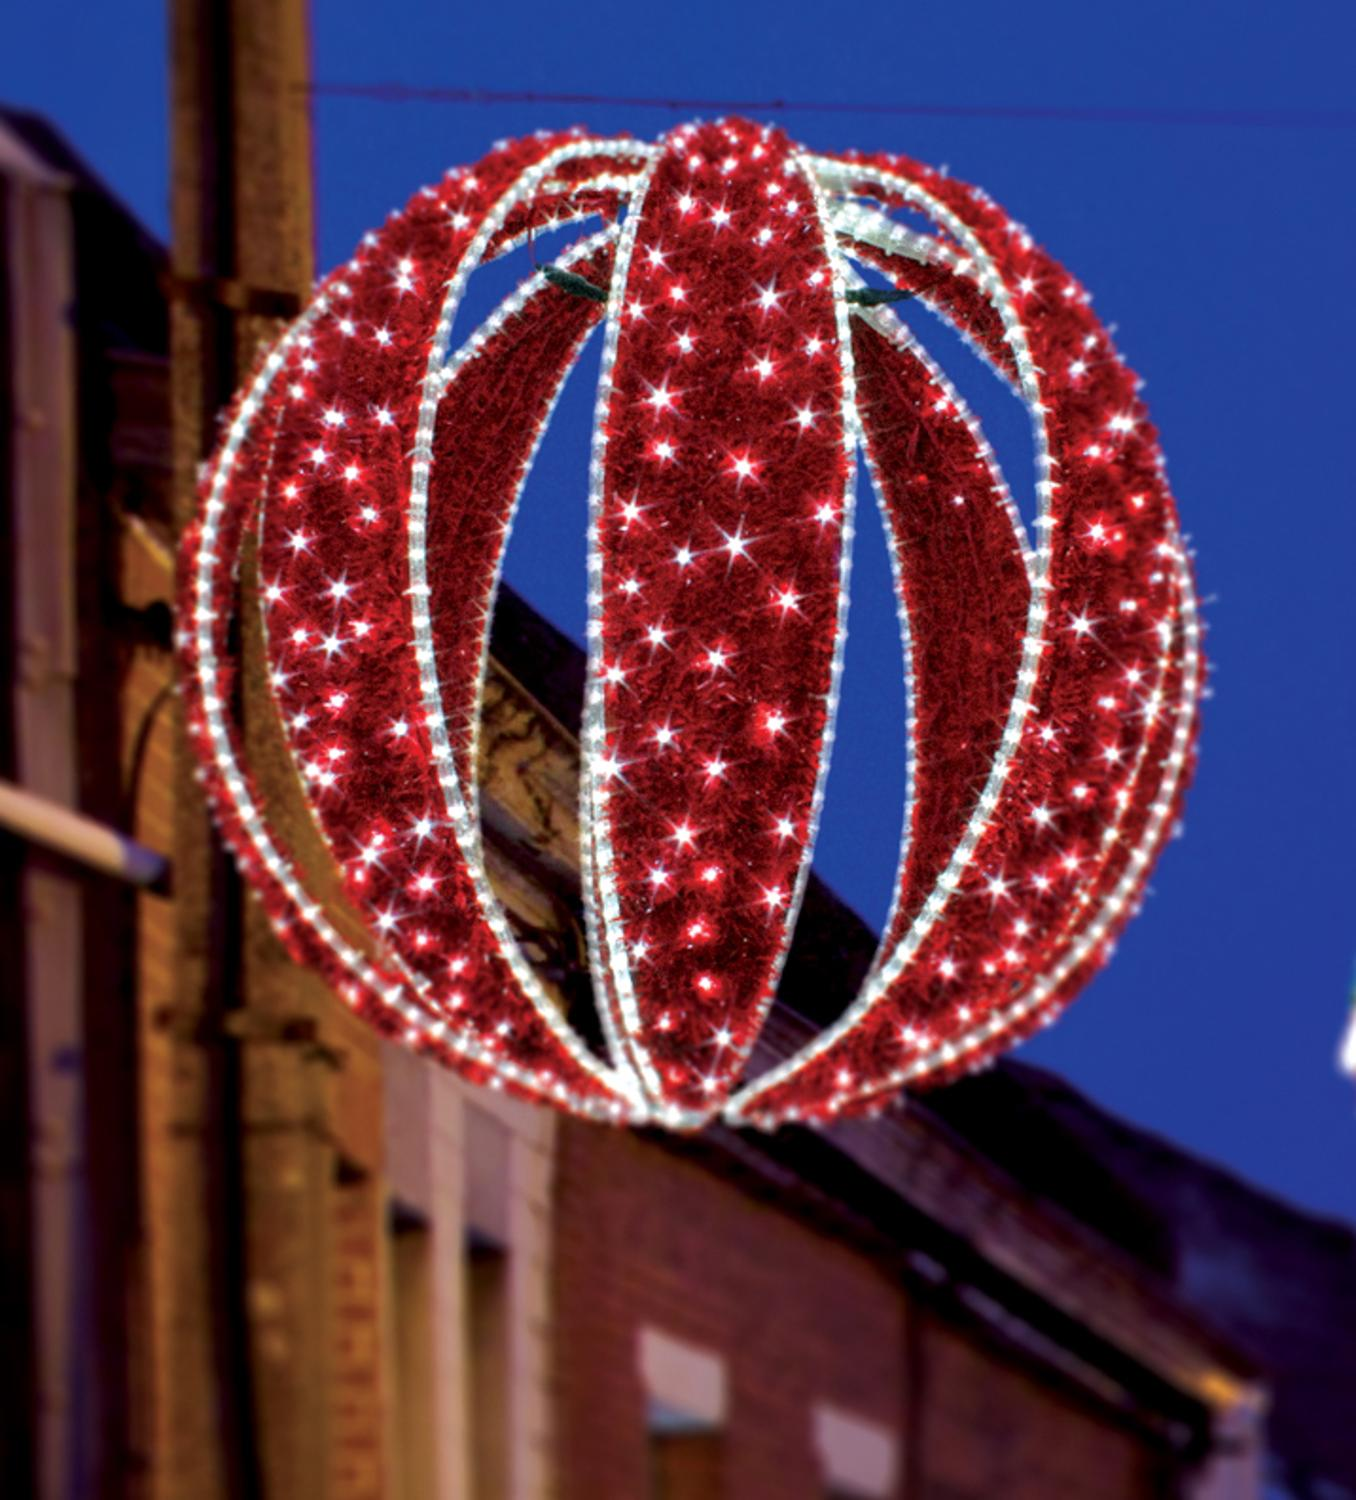 Led lighted red zurich sphere commercial christmas